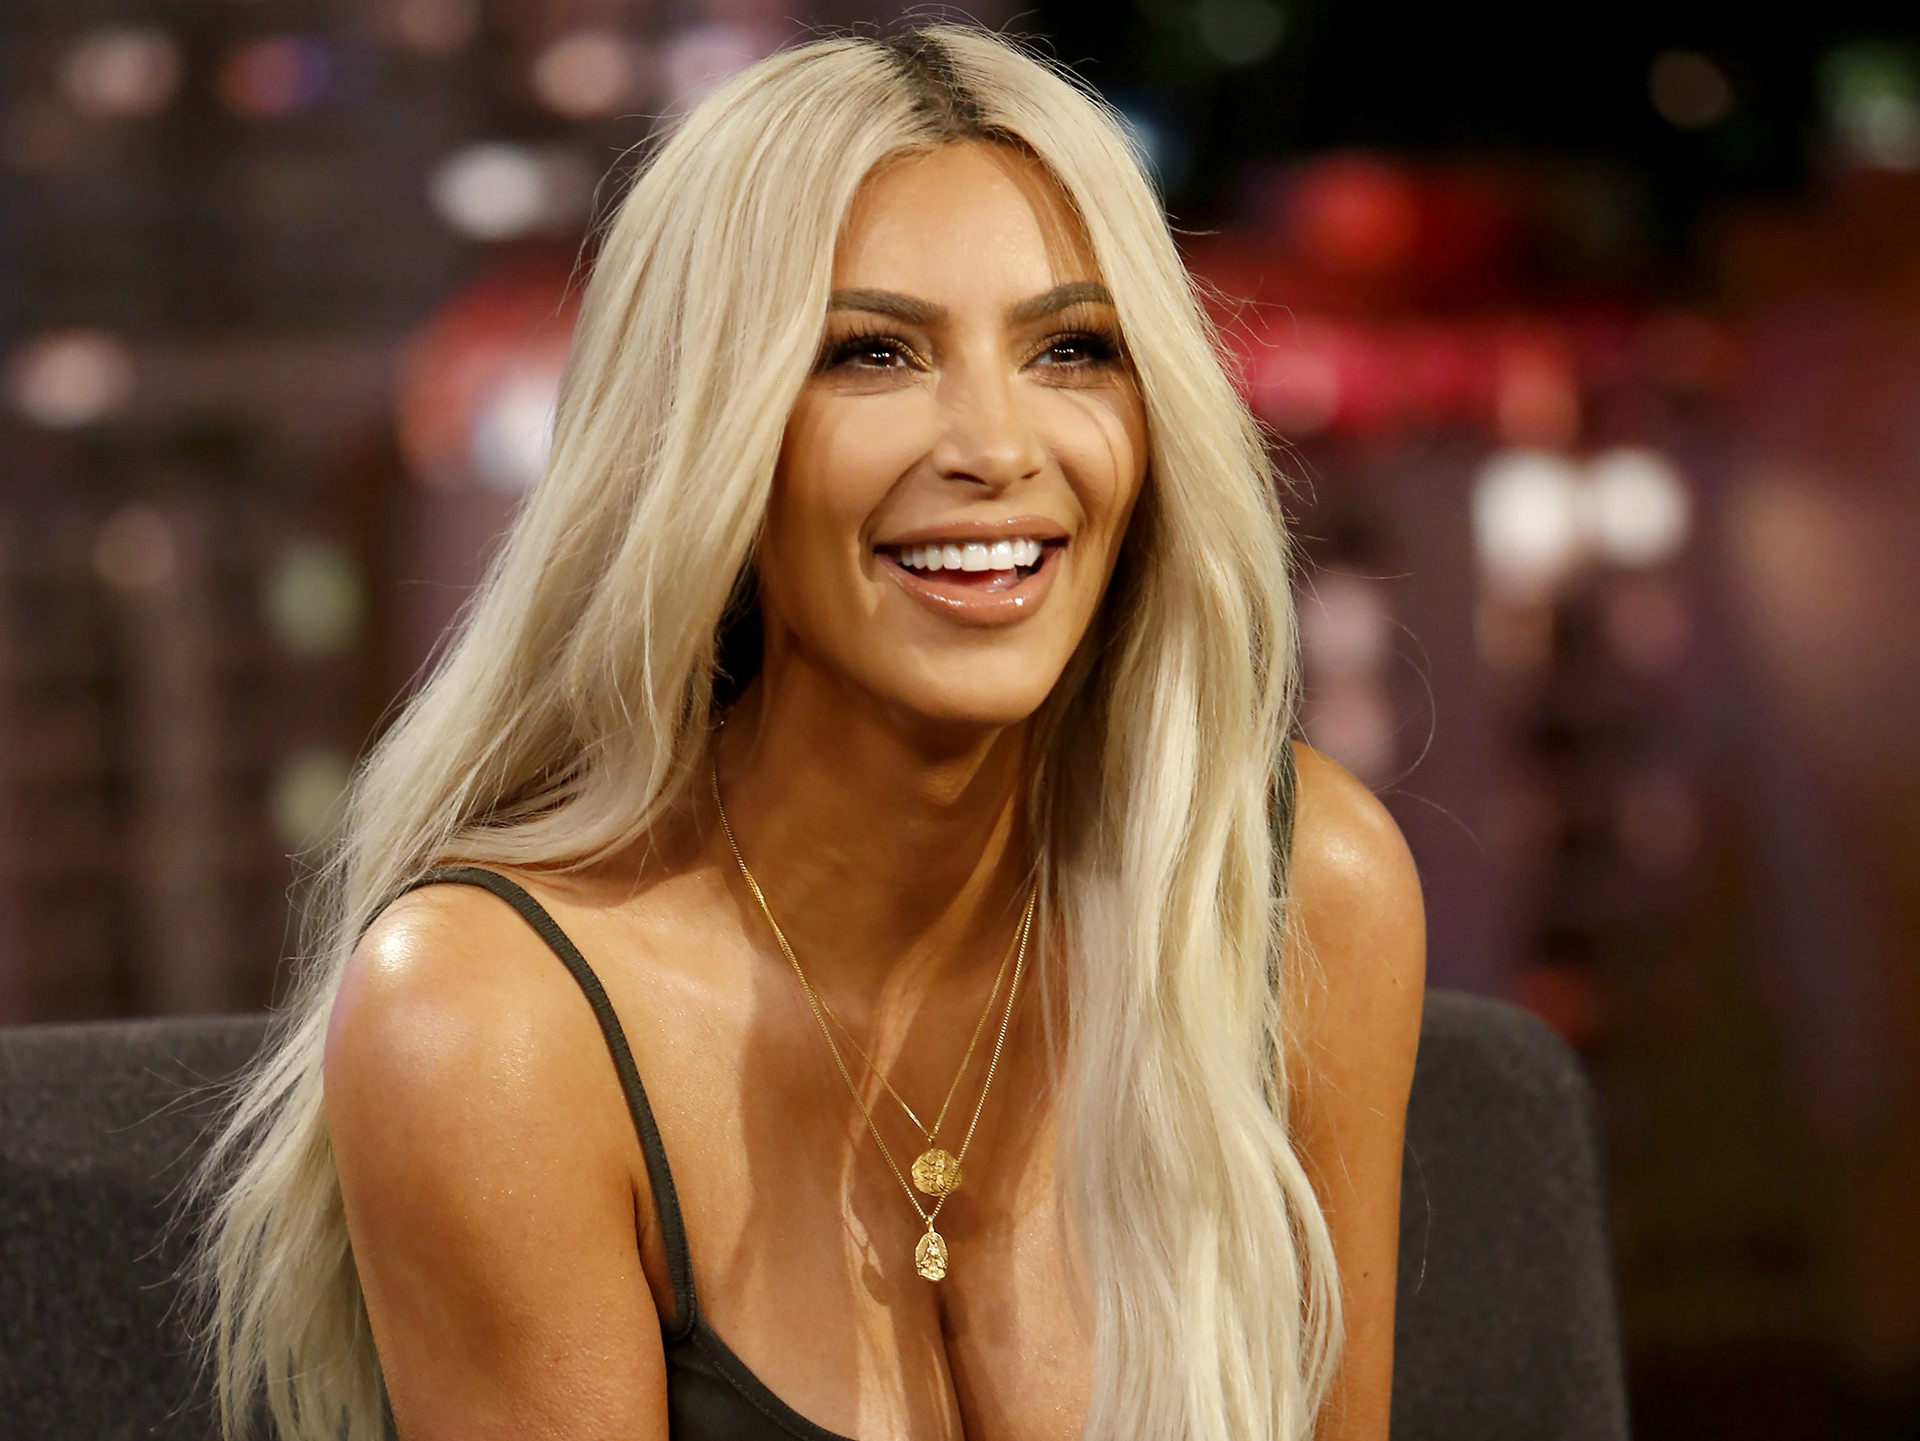 Kim Kardashian admits she's totally self-absorbed in candid Twitter chat with fans